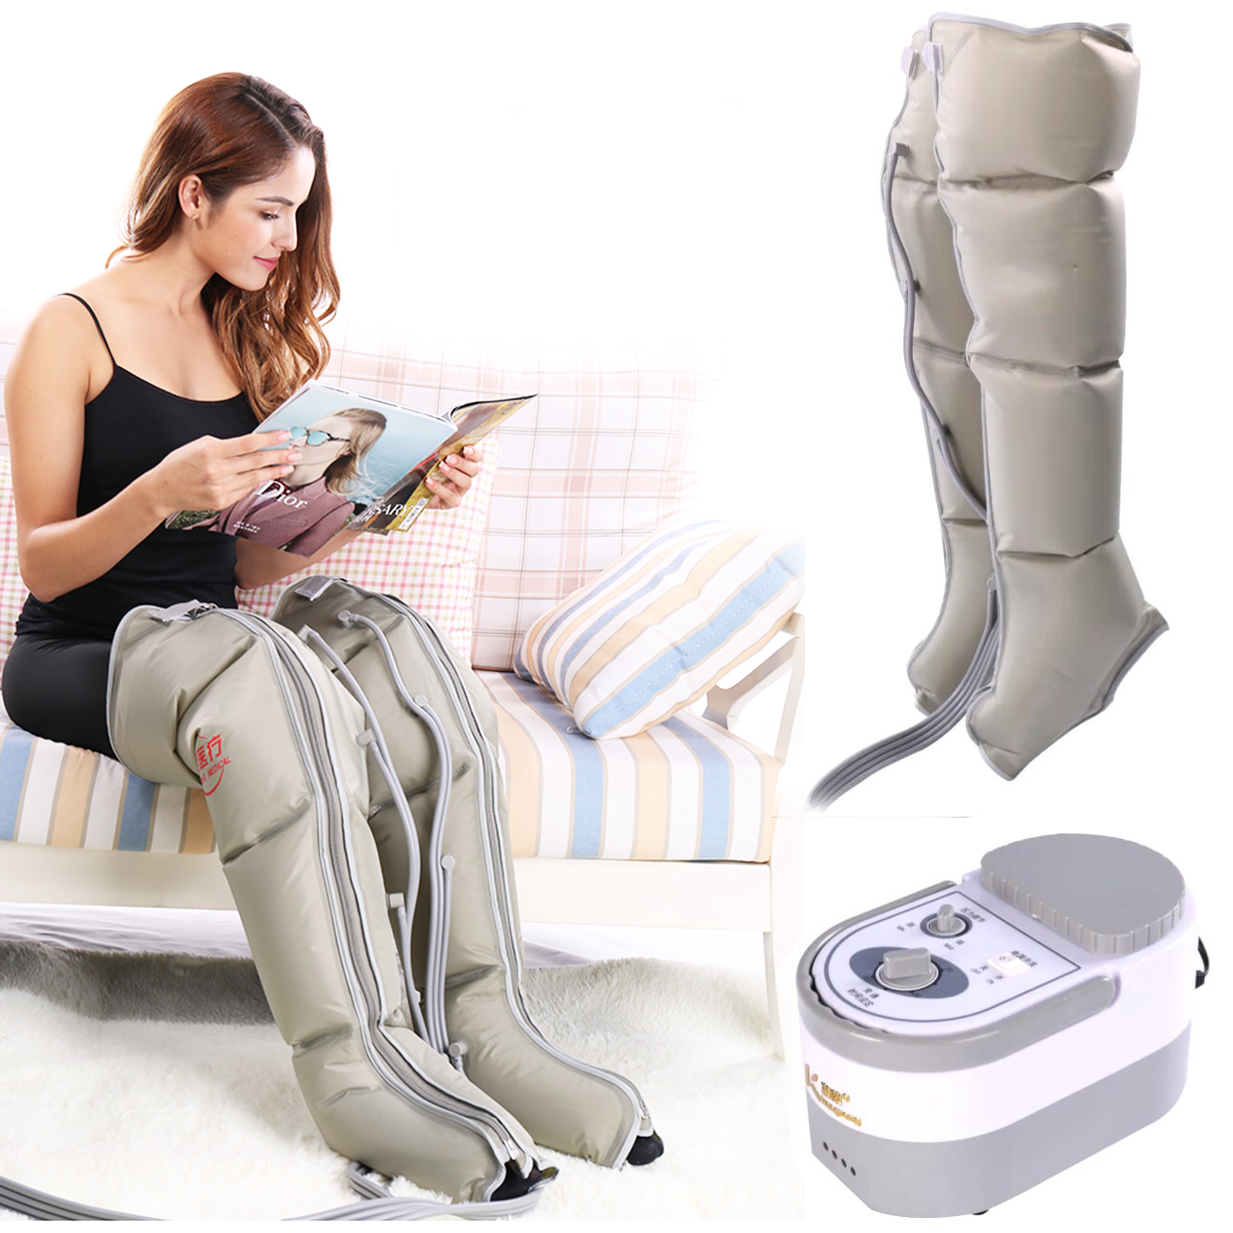 Air Compression Leg Wraps >> Electric Air Compression Leg Massager Leg Wraps Foot Ankles Calf Massage Machine Promote Blood ...